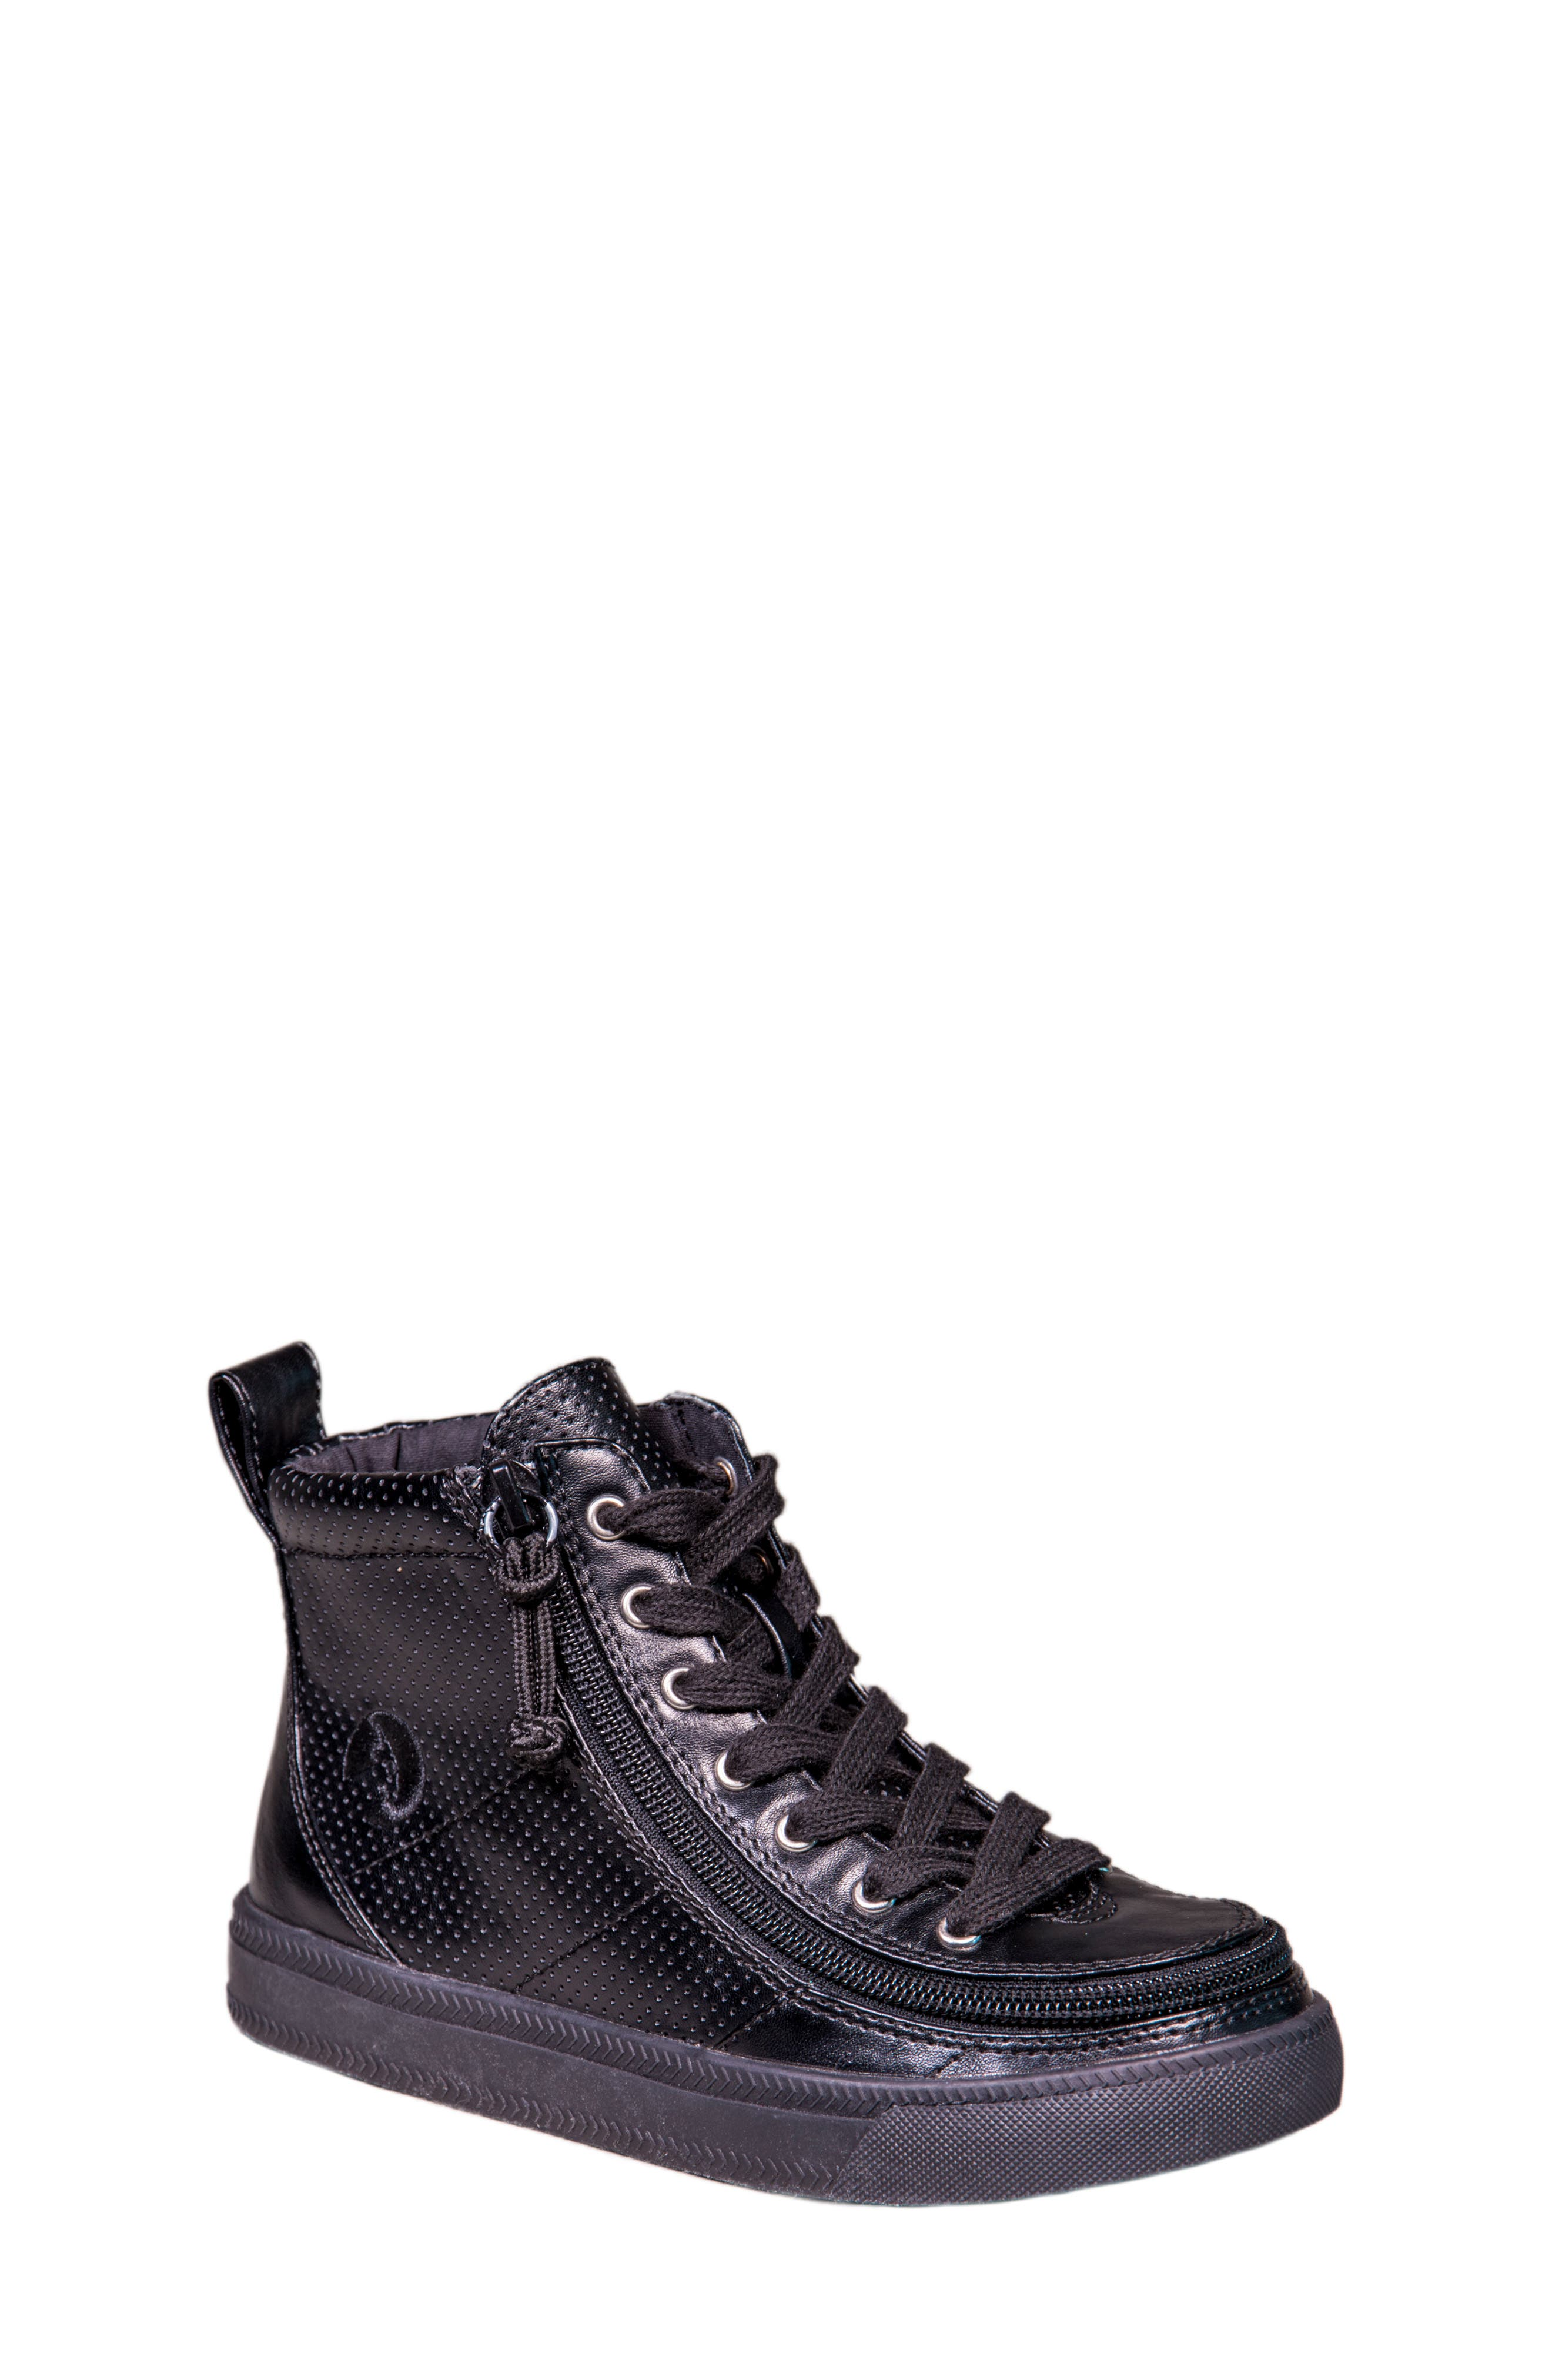 Zip Around Perforated High Top Sneaker,                             Main thumbnail 1, color,                             Black Perforated